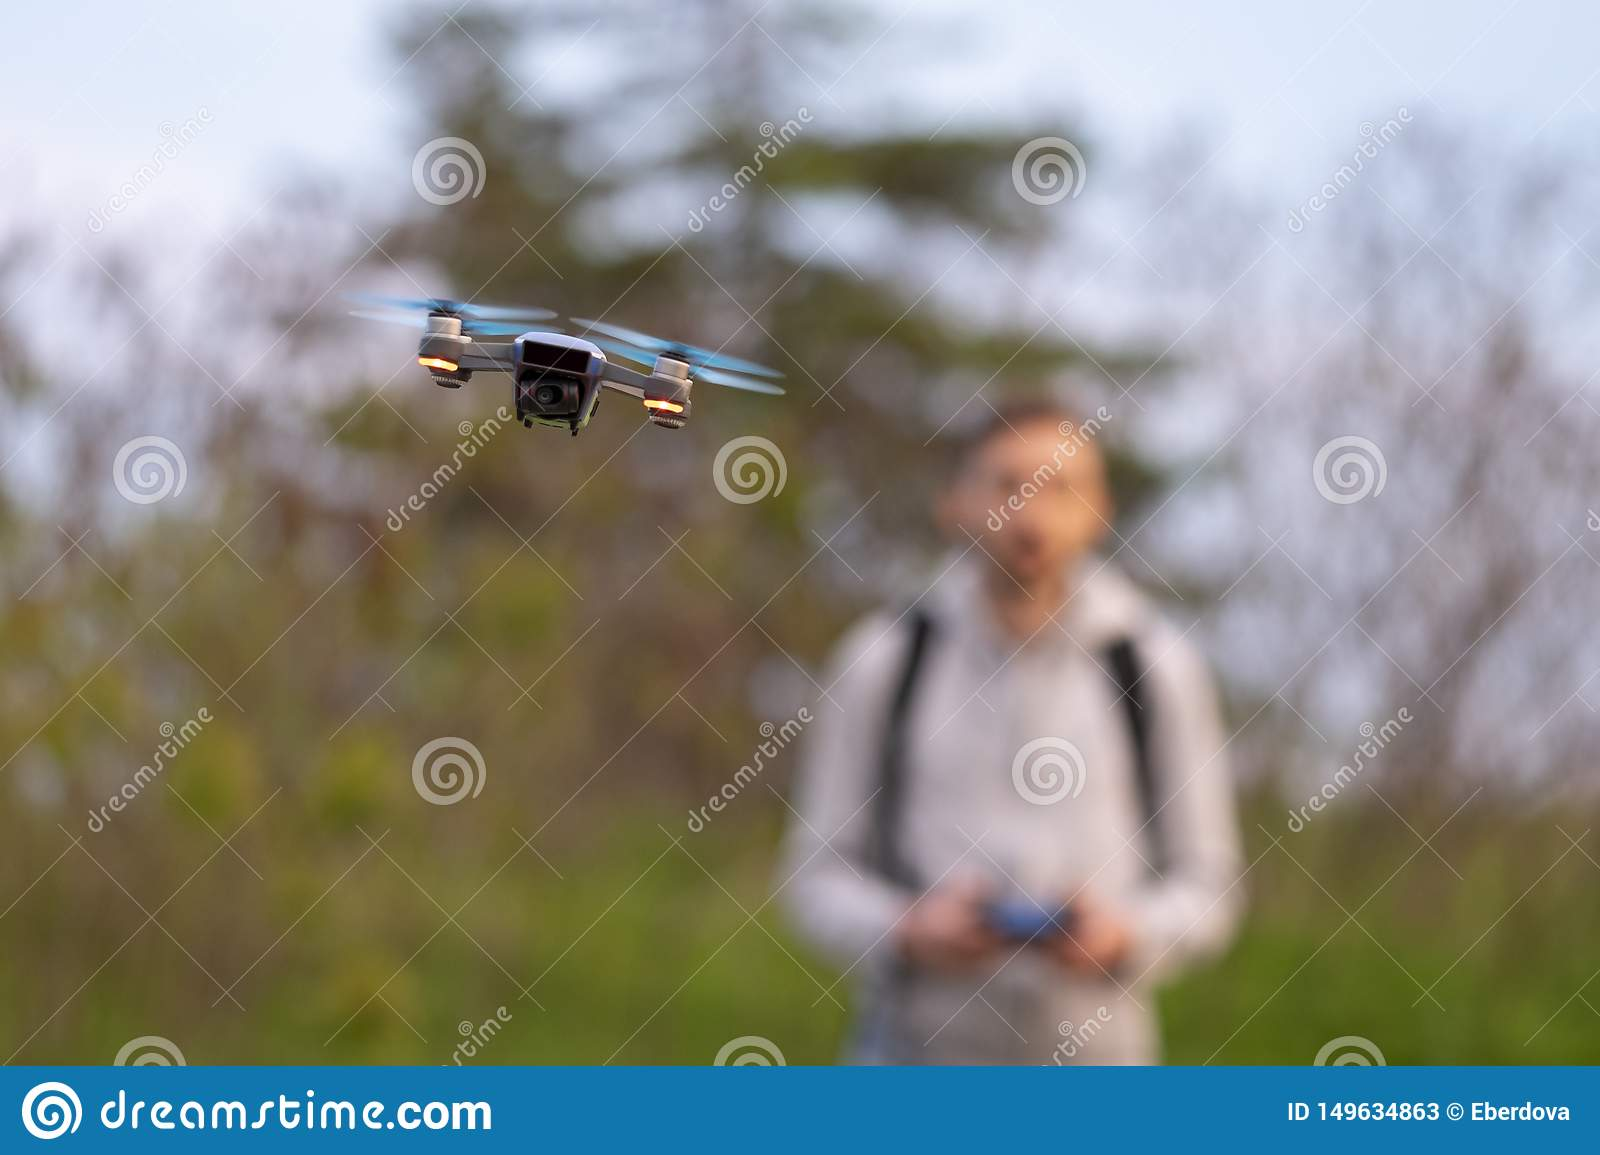 Young man navigates small drone.